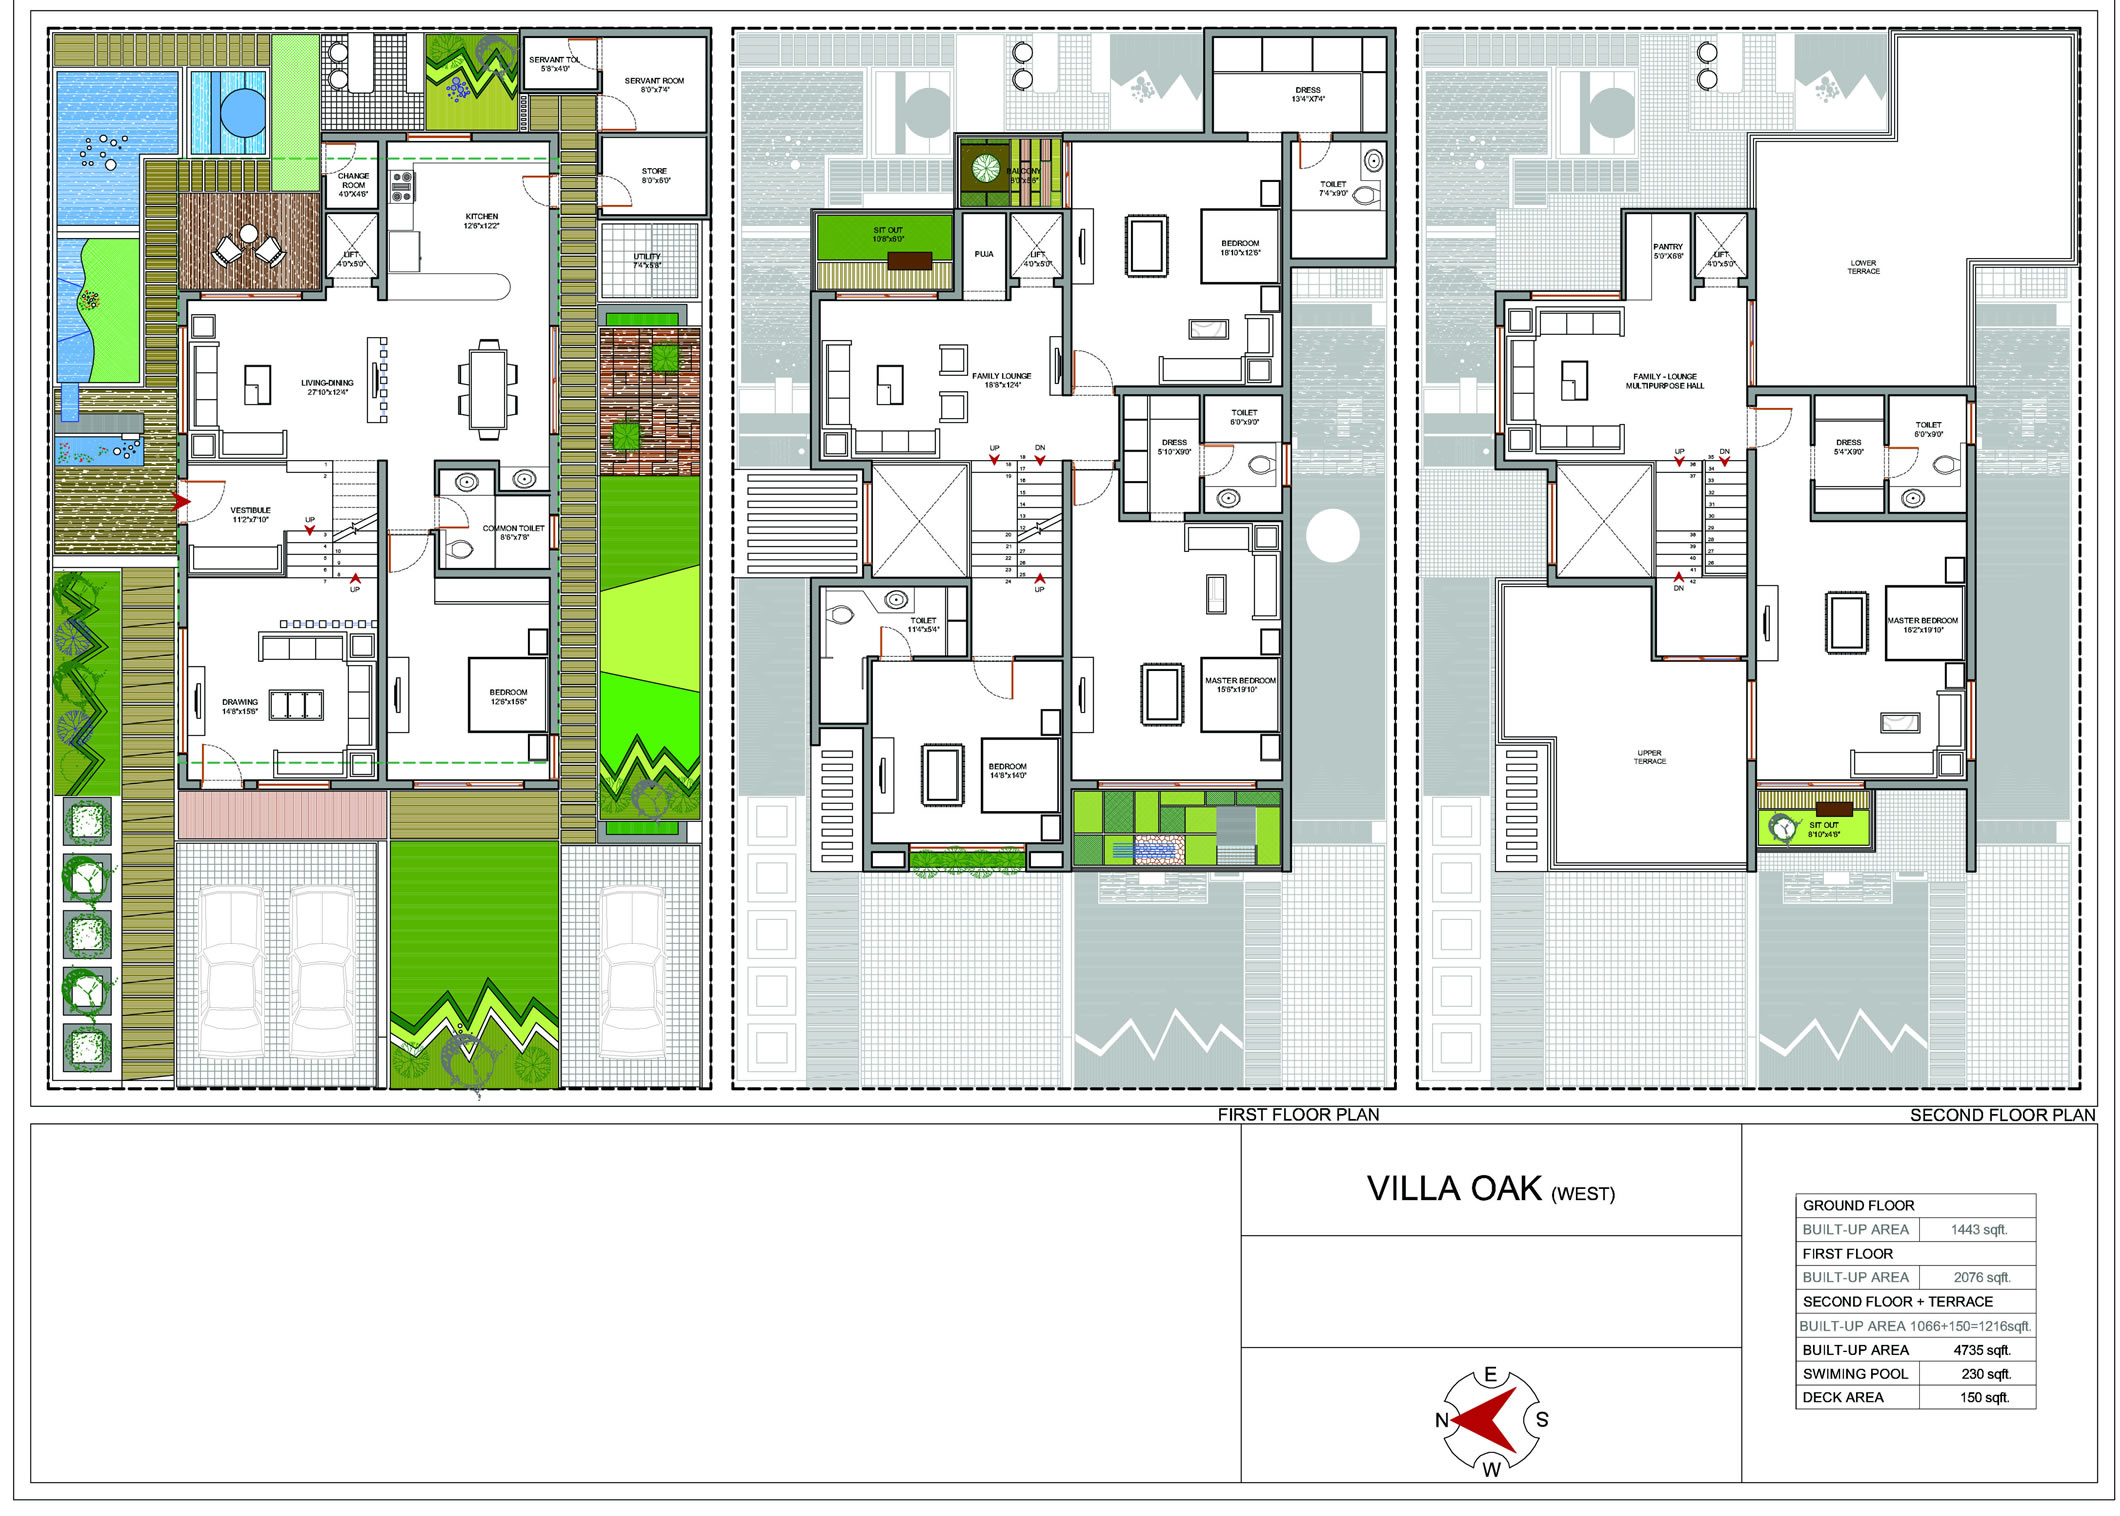 Golf Signature Villas Apollo Villa Electrical Plan Floor